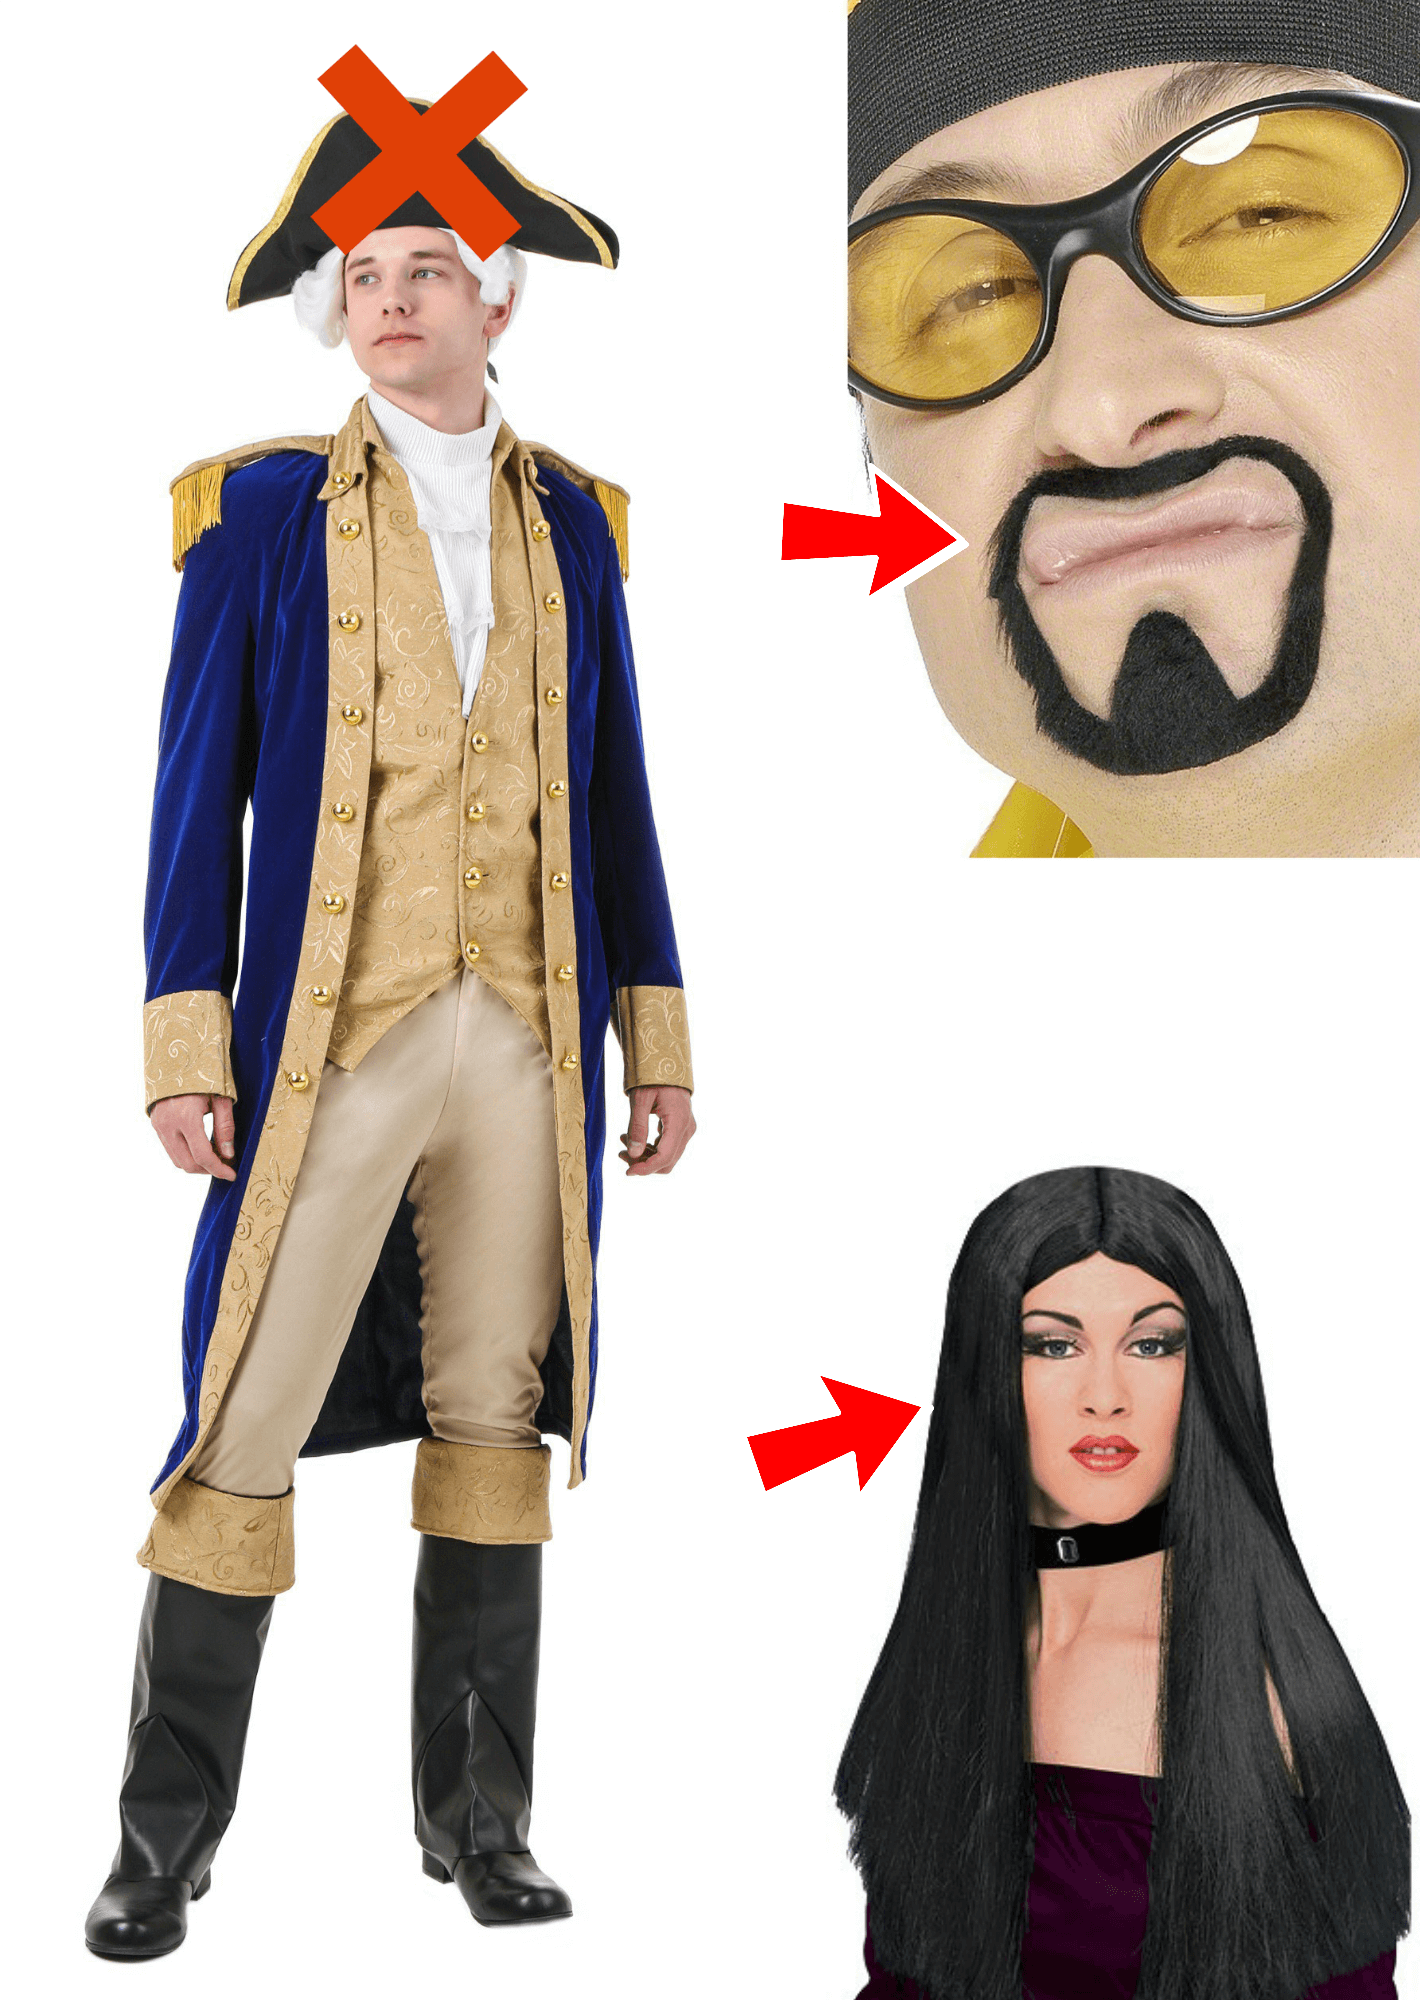 Alexander Hamilton Halloween Costume  sc 1 st  Halloween Costumes & DIY Hamilton Costume Ideas for Halloween That Will Leave You ...